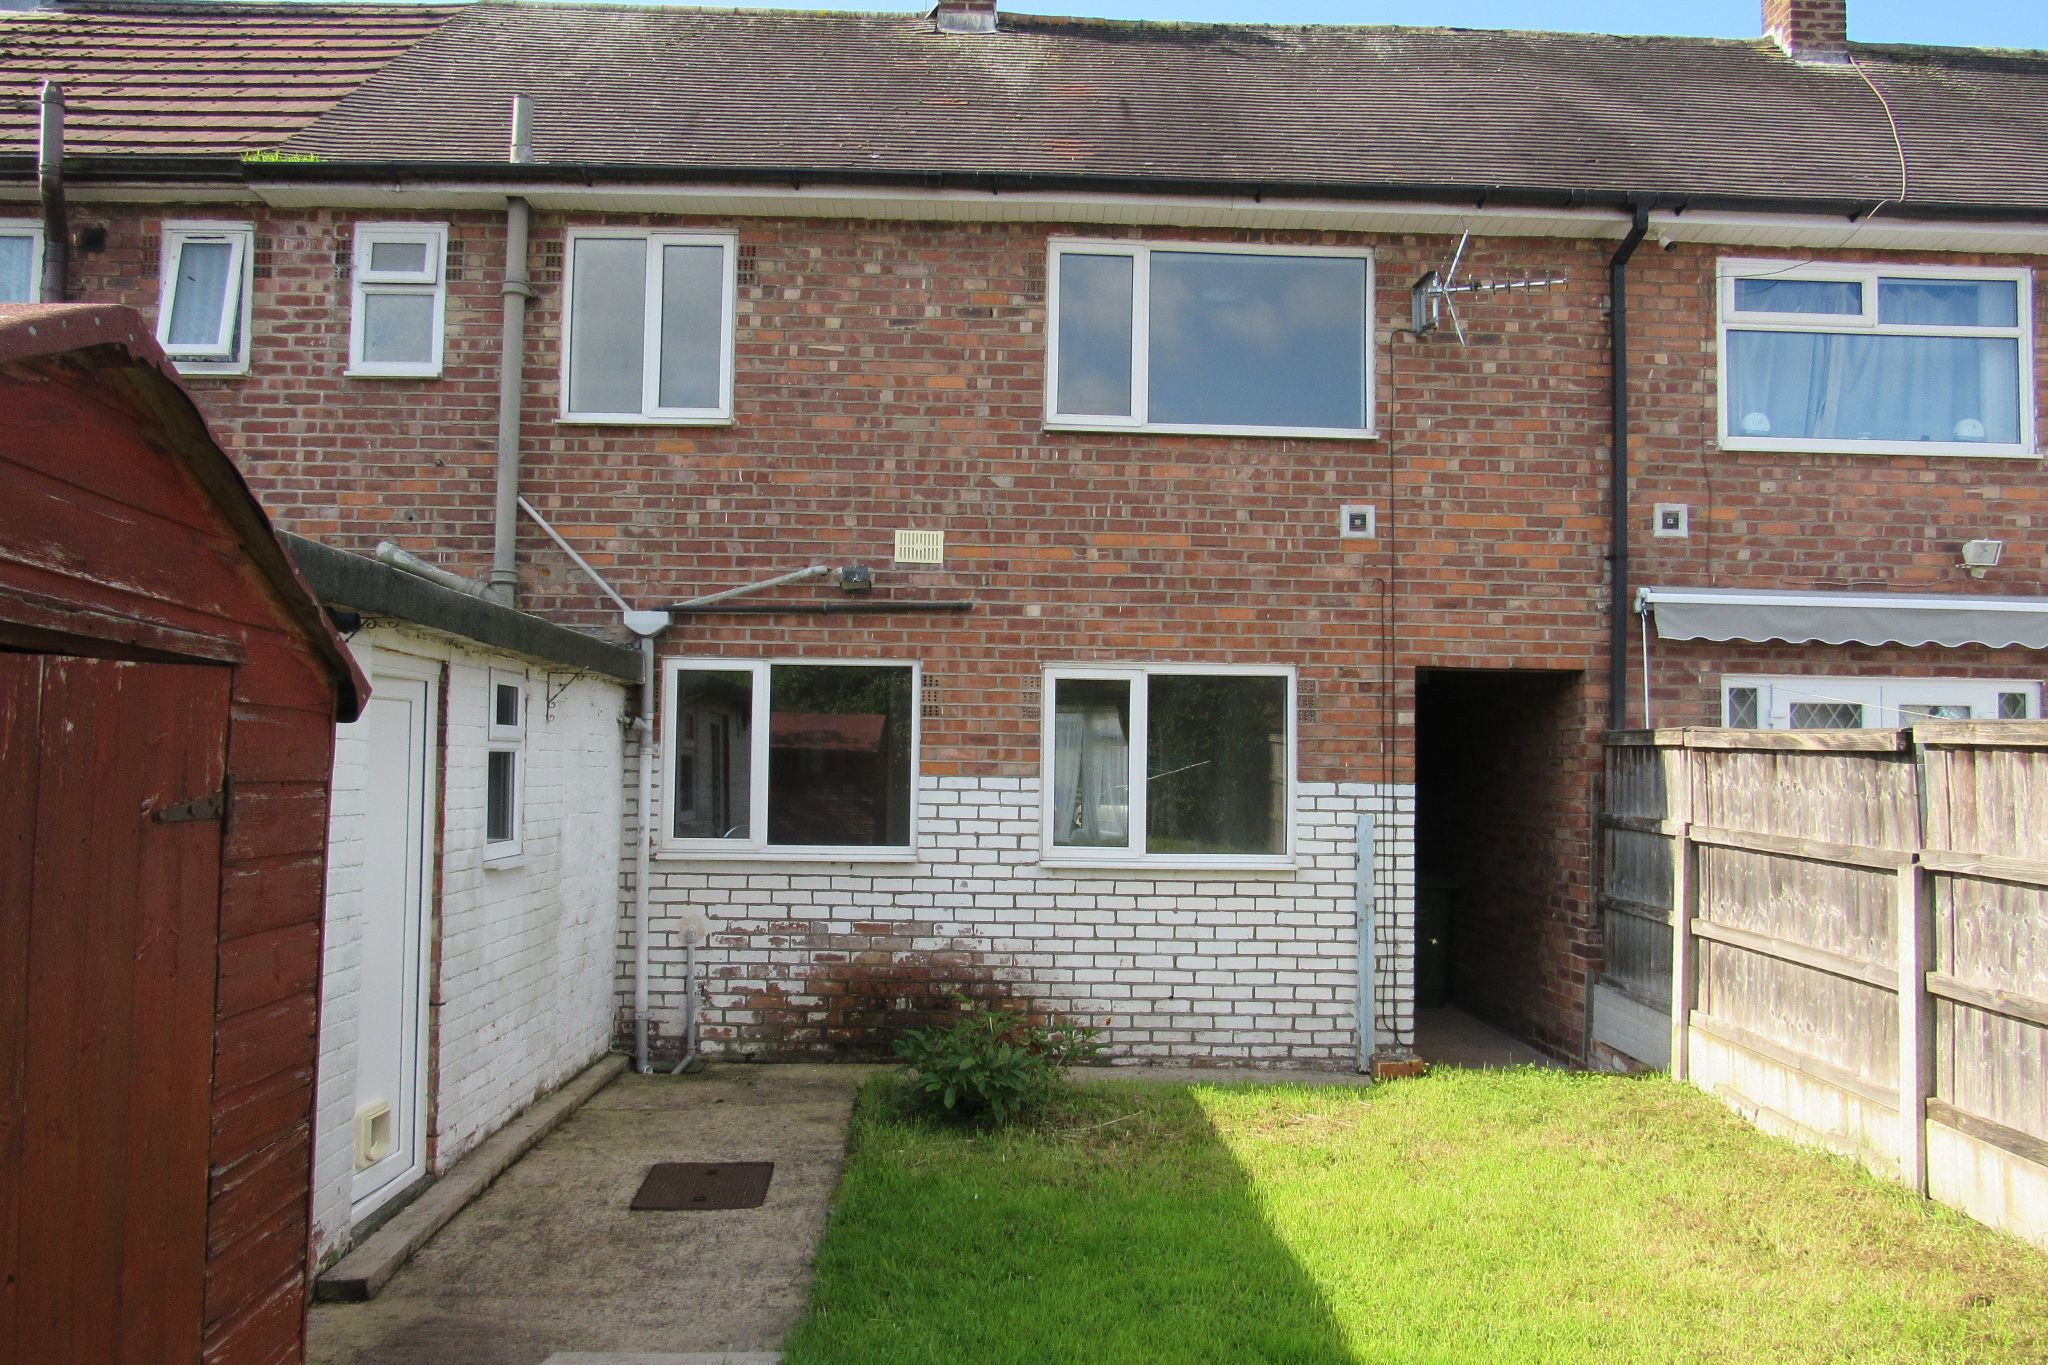 3 bedroom mid terraced house Sale Agreed in Manchester - Photograph 21.